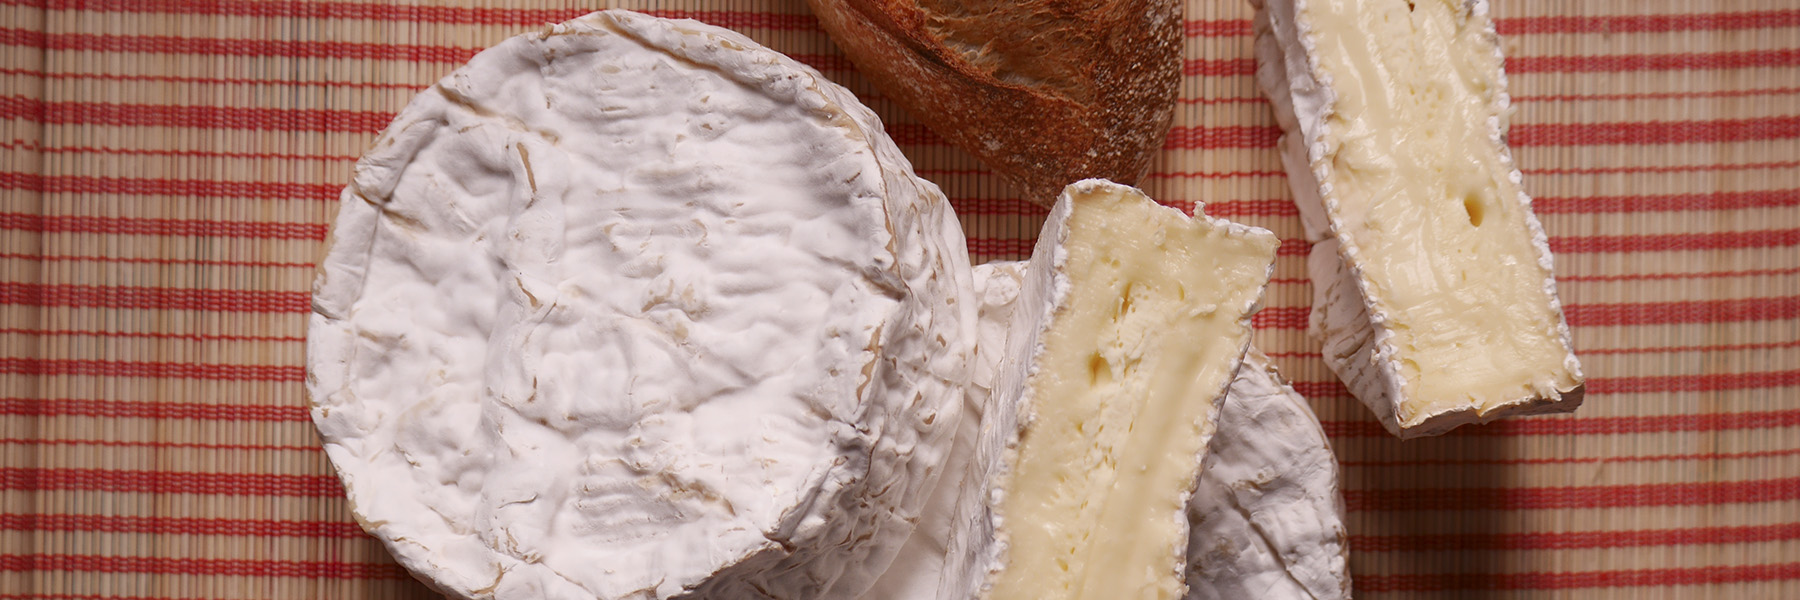 camembert-fromage-prefere-des-francais.jpg